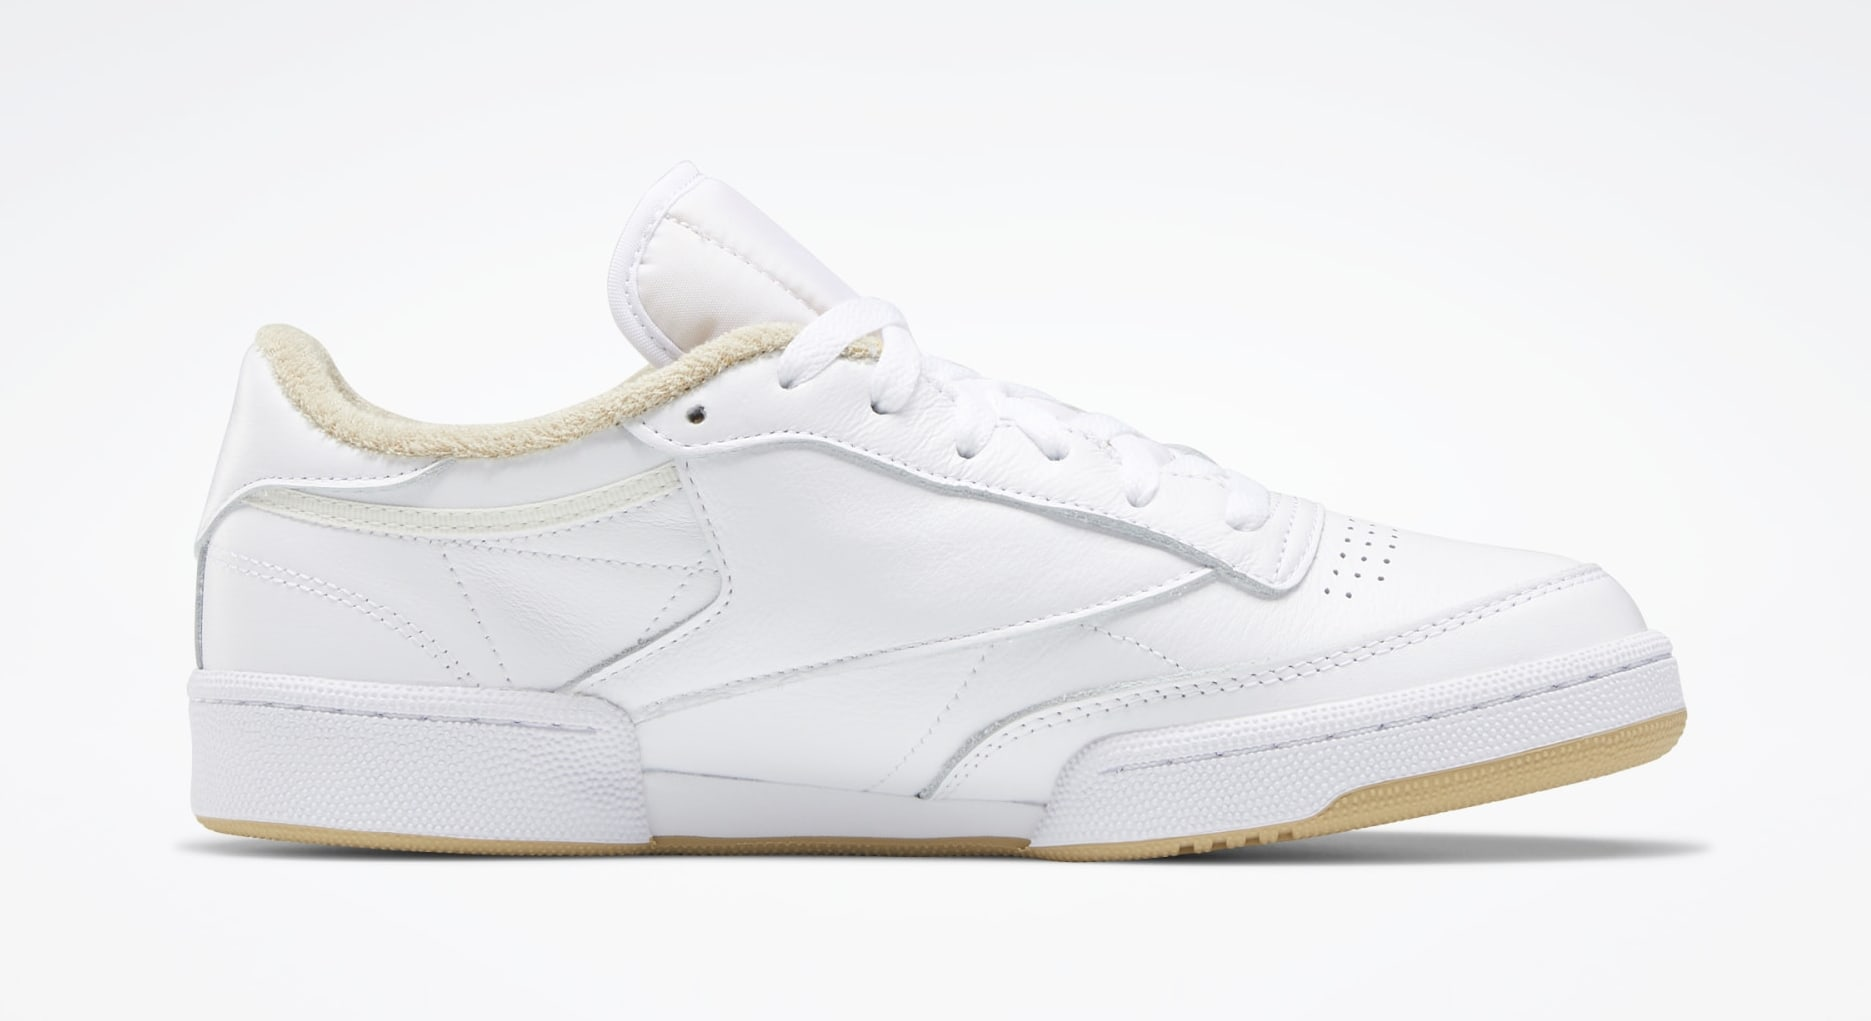 JJJJound x Reebok Club C 'Beige' FY6066 Medial